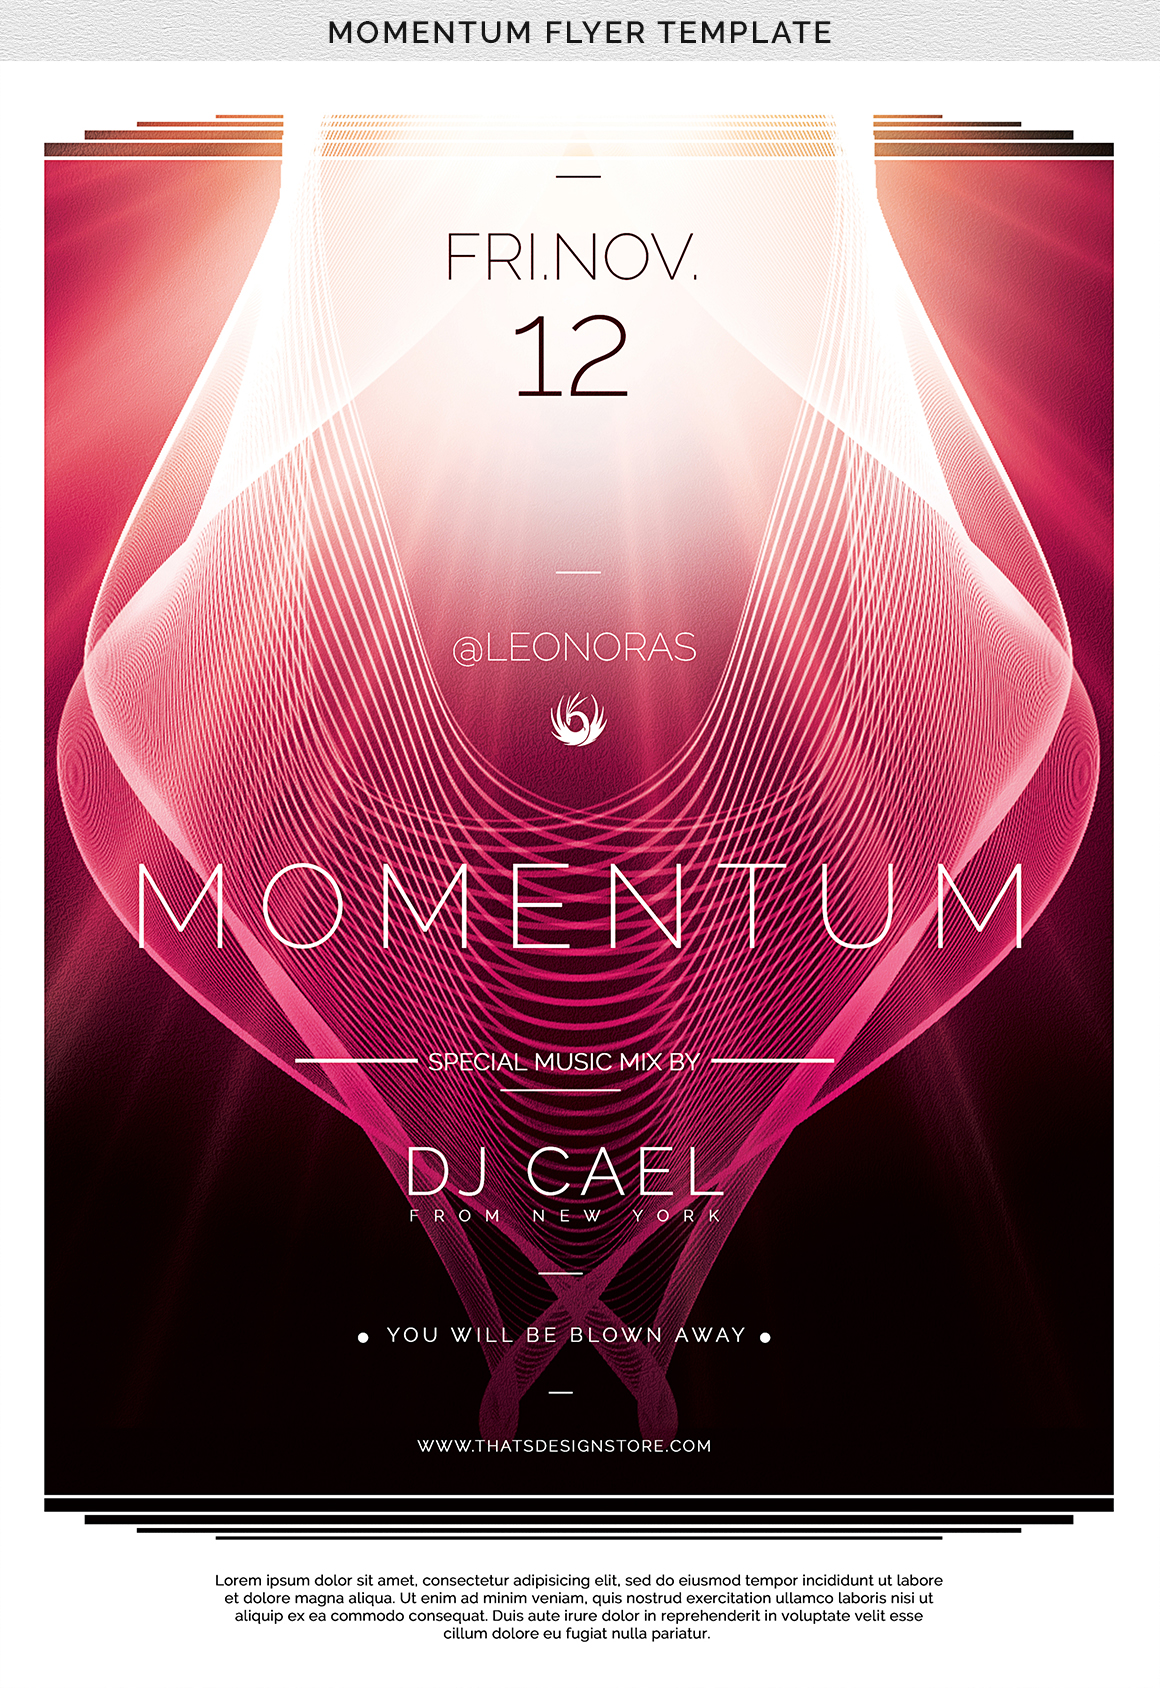 Momentum Flyer Template example image 10